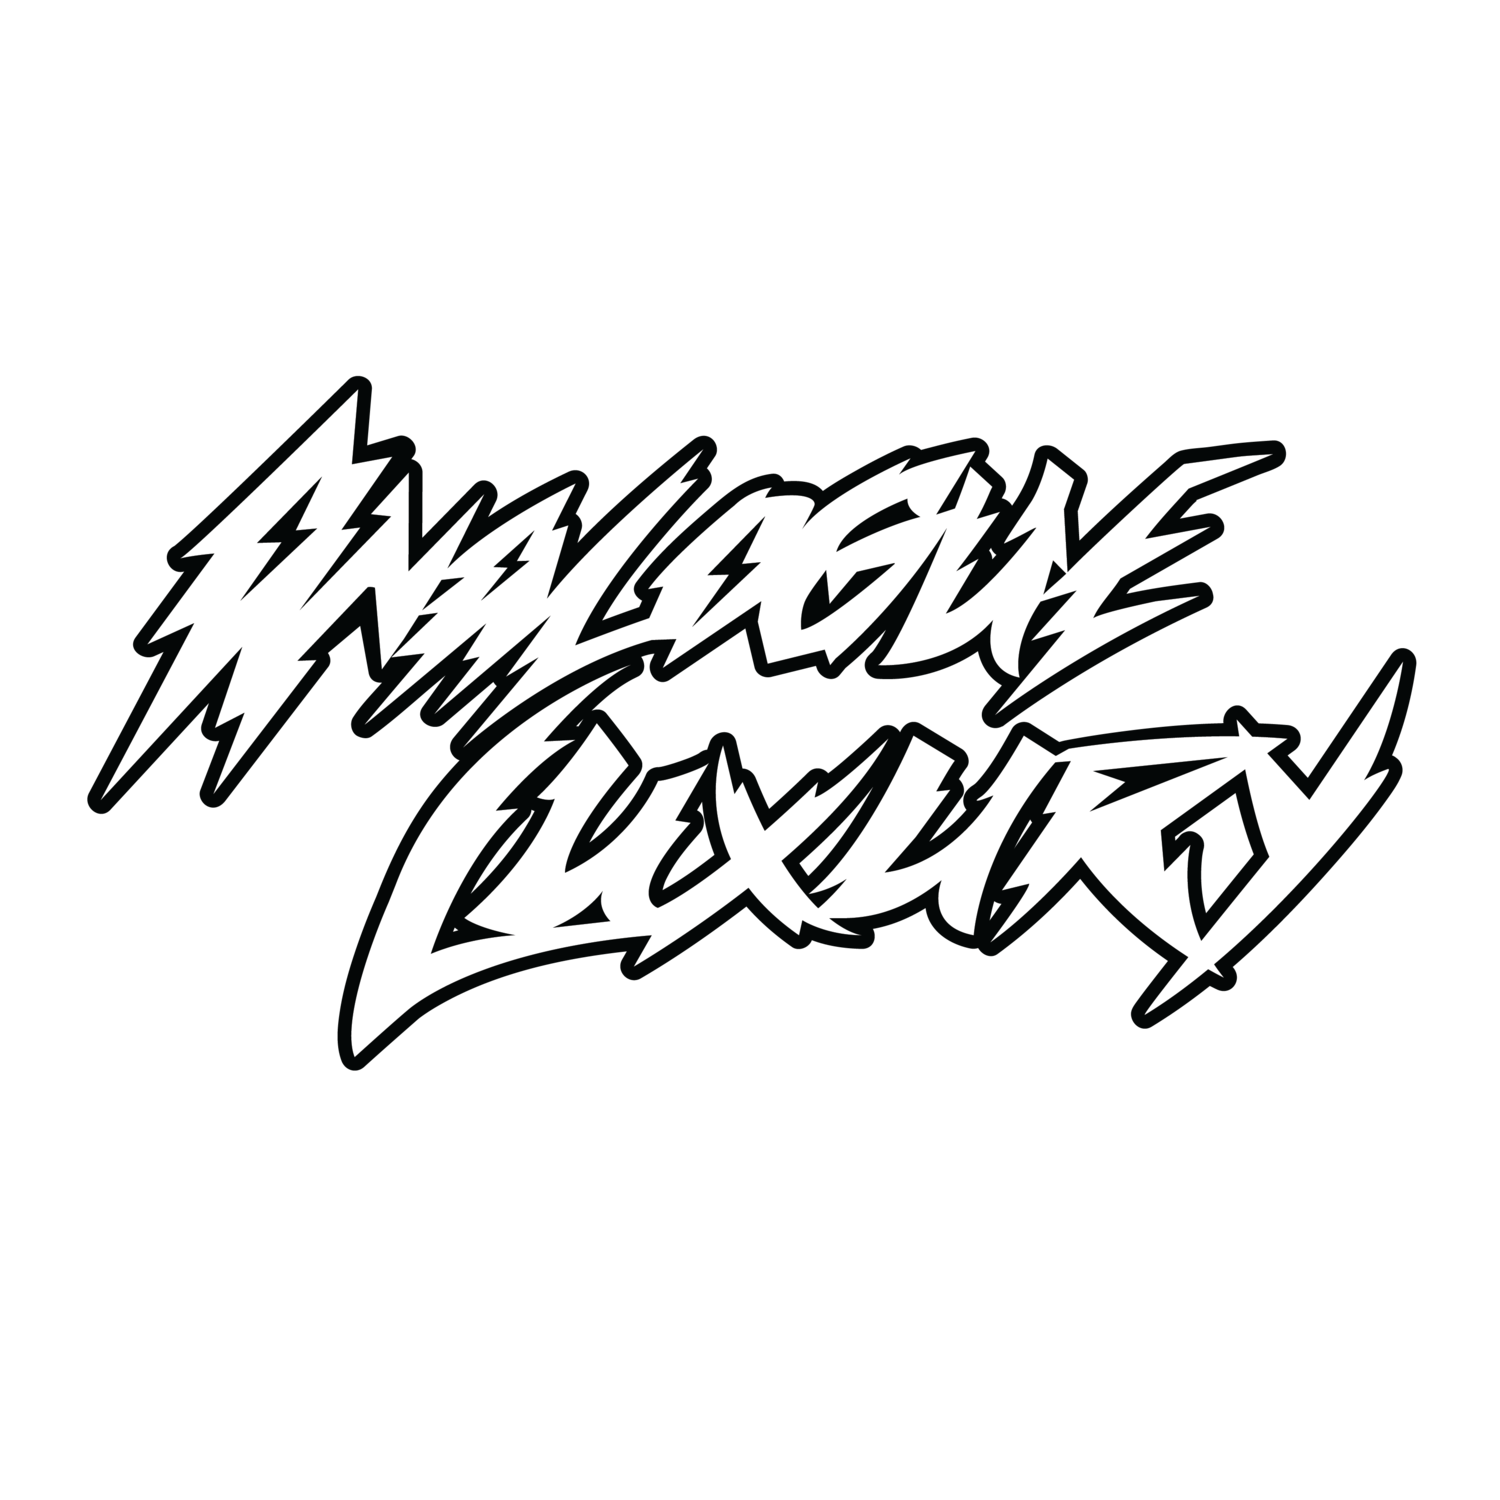 Analogue Luxury